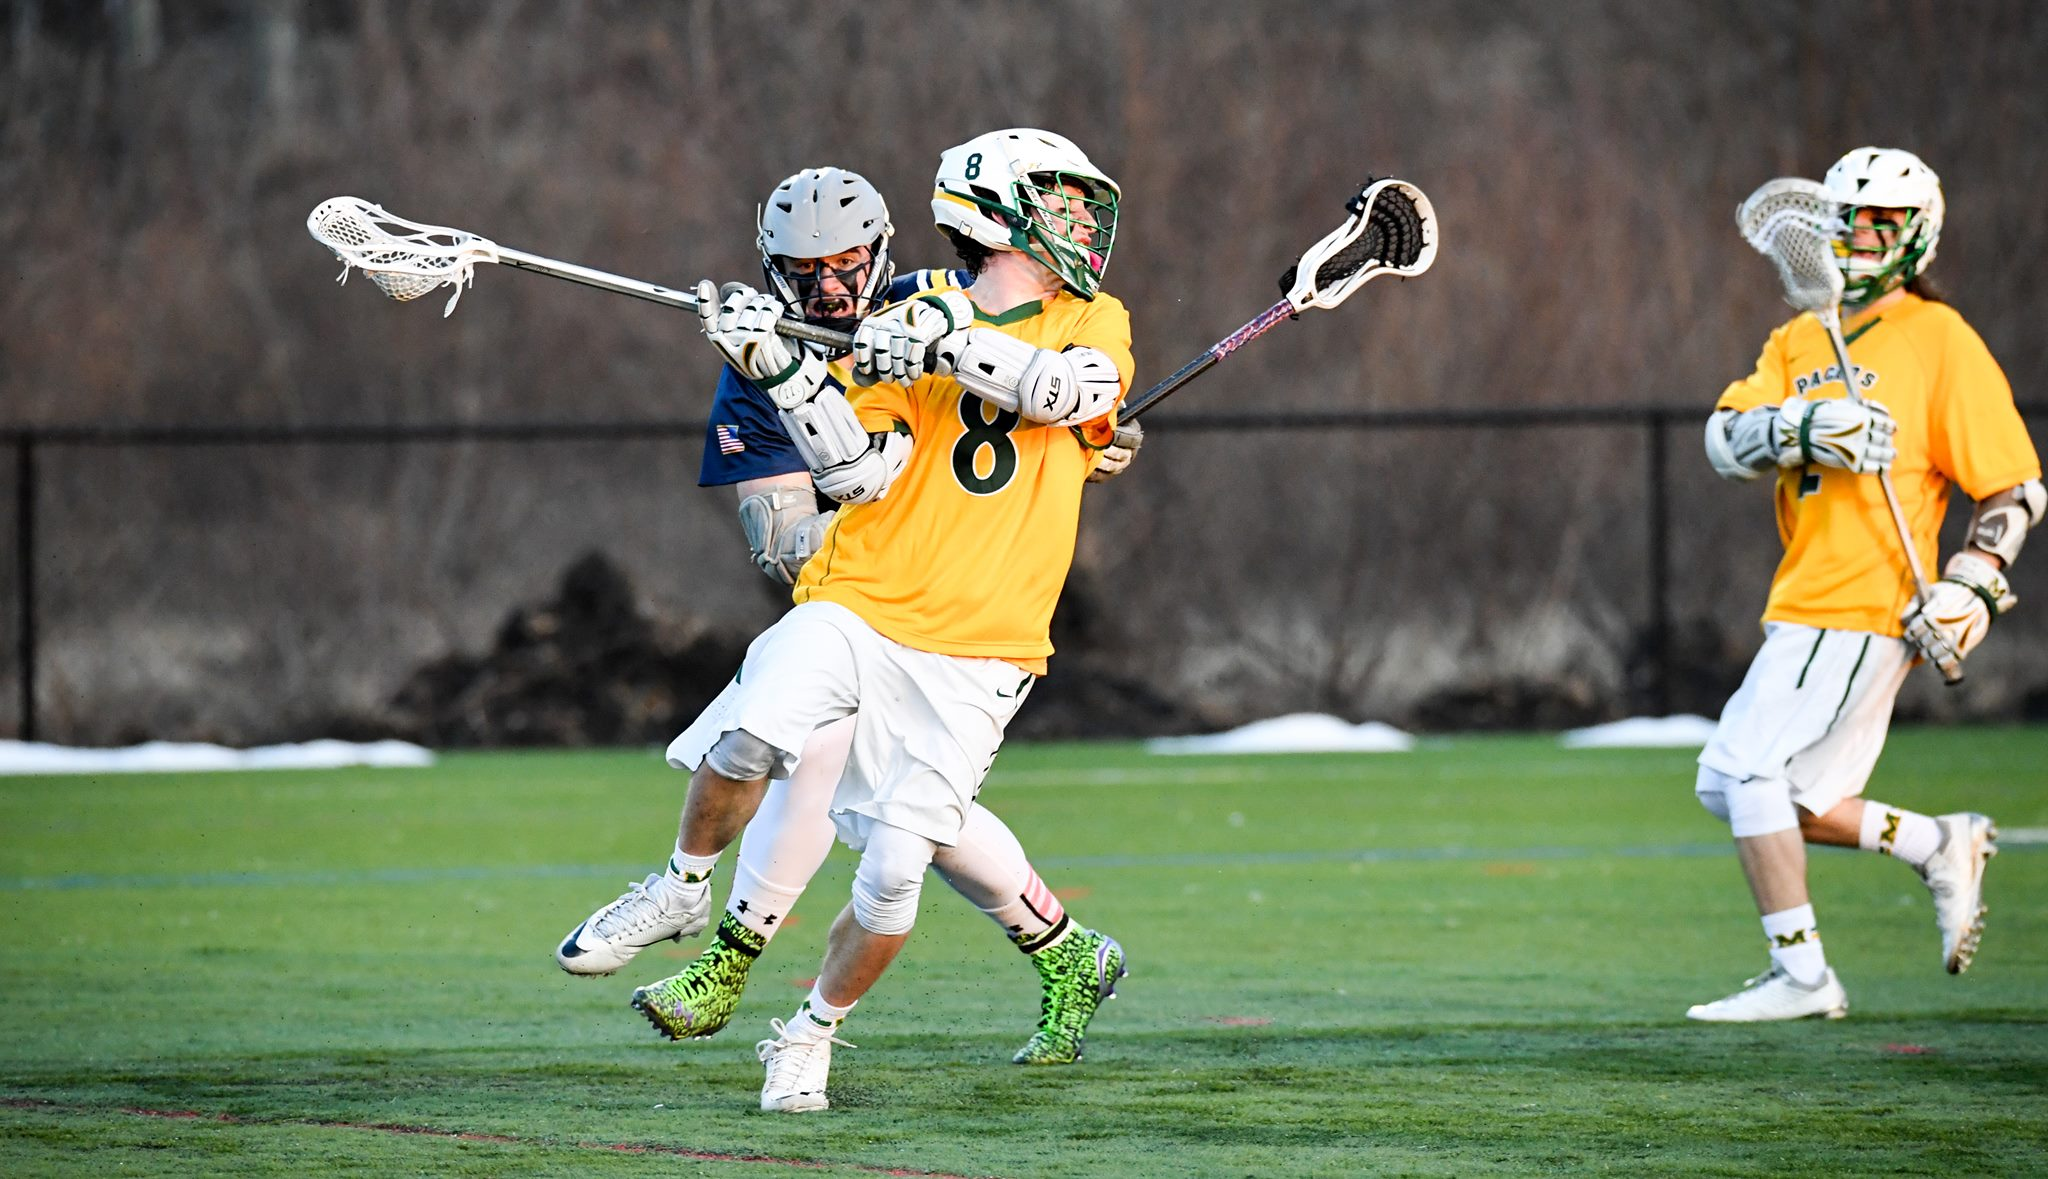 Junior attacker Matt Casto lights up the scoreboard with a five-goal performance against Rosemont. Photo courtesy of Marywood Athletics